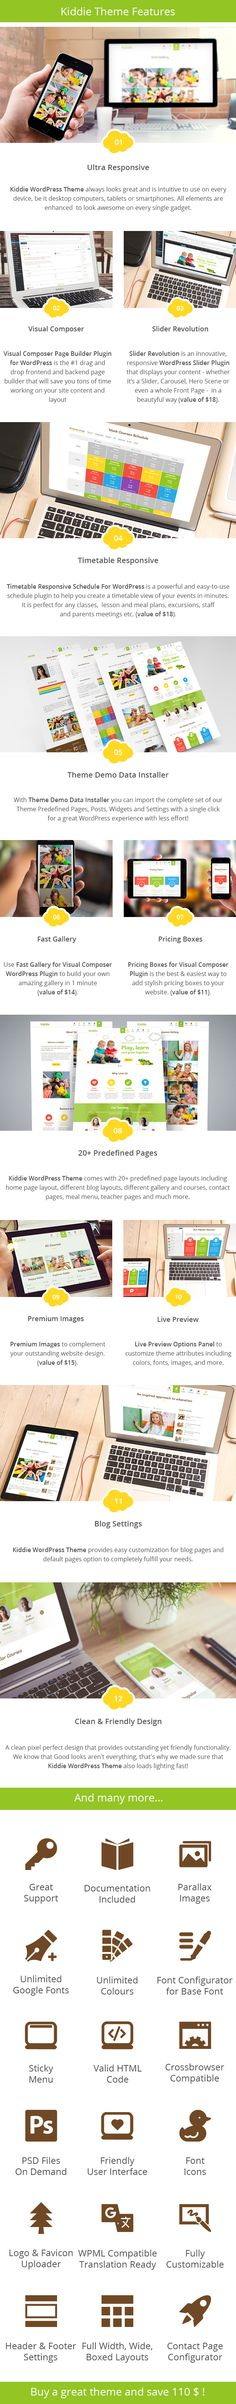 Kiddie - Kindergarten WordPress Theme (Education) Nulled - http://nulledzero.com/kiddie-kindergarten-wordpress-theme-education-nulled/ - Kiddie – Kindergarten WordPress Theme (Education) Nulled Free download Final version      baby-kindergarten theme WordPress  modern clean sensitive themes, designed and created for the  site, preschools and childcare centers  but it is also suitable for any other children-related projects,...